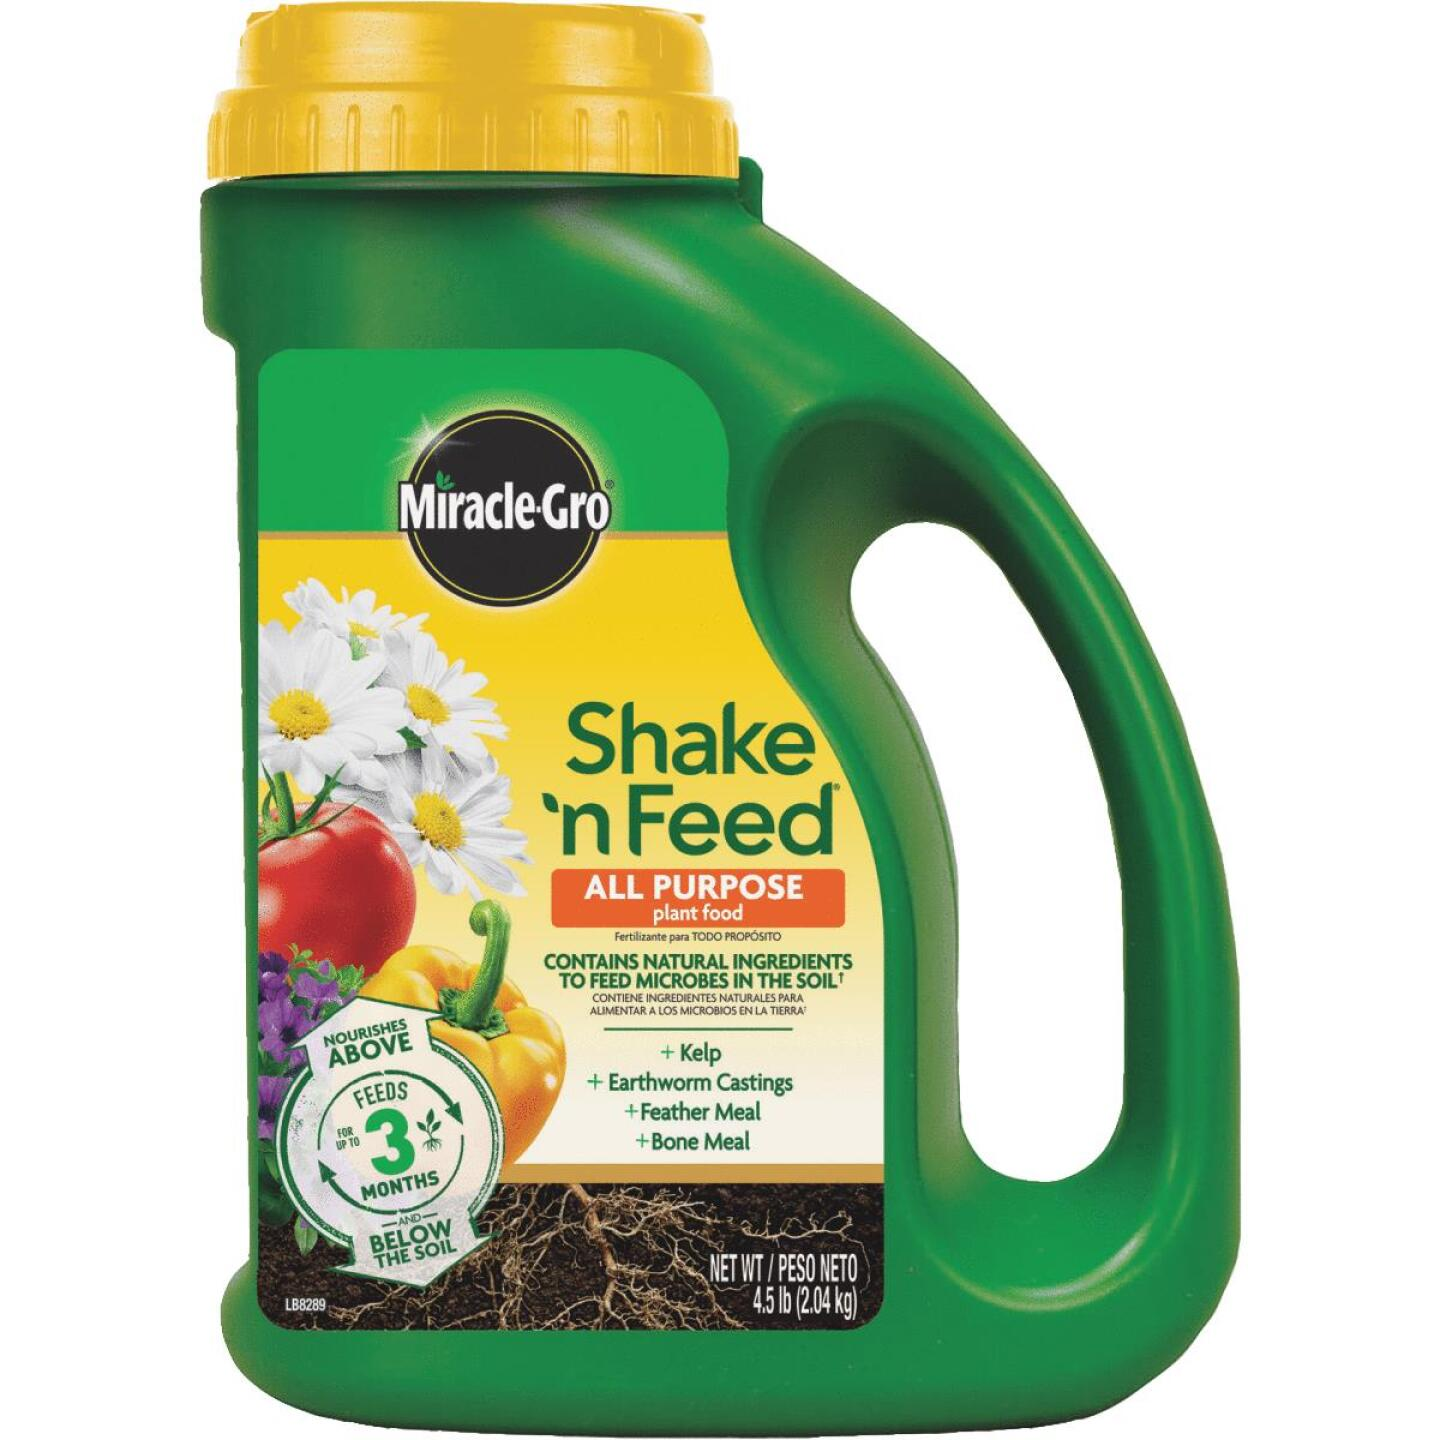 Miracle-Gro Shake N' Feed 4.5 Lb. 12-4-8 All-Purpose Dry Plant Food Image 1